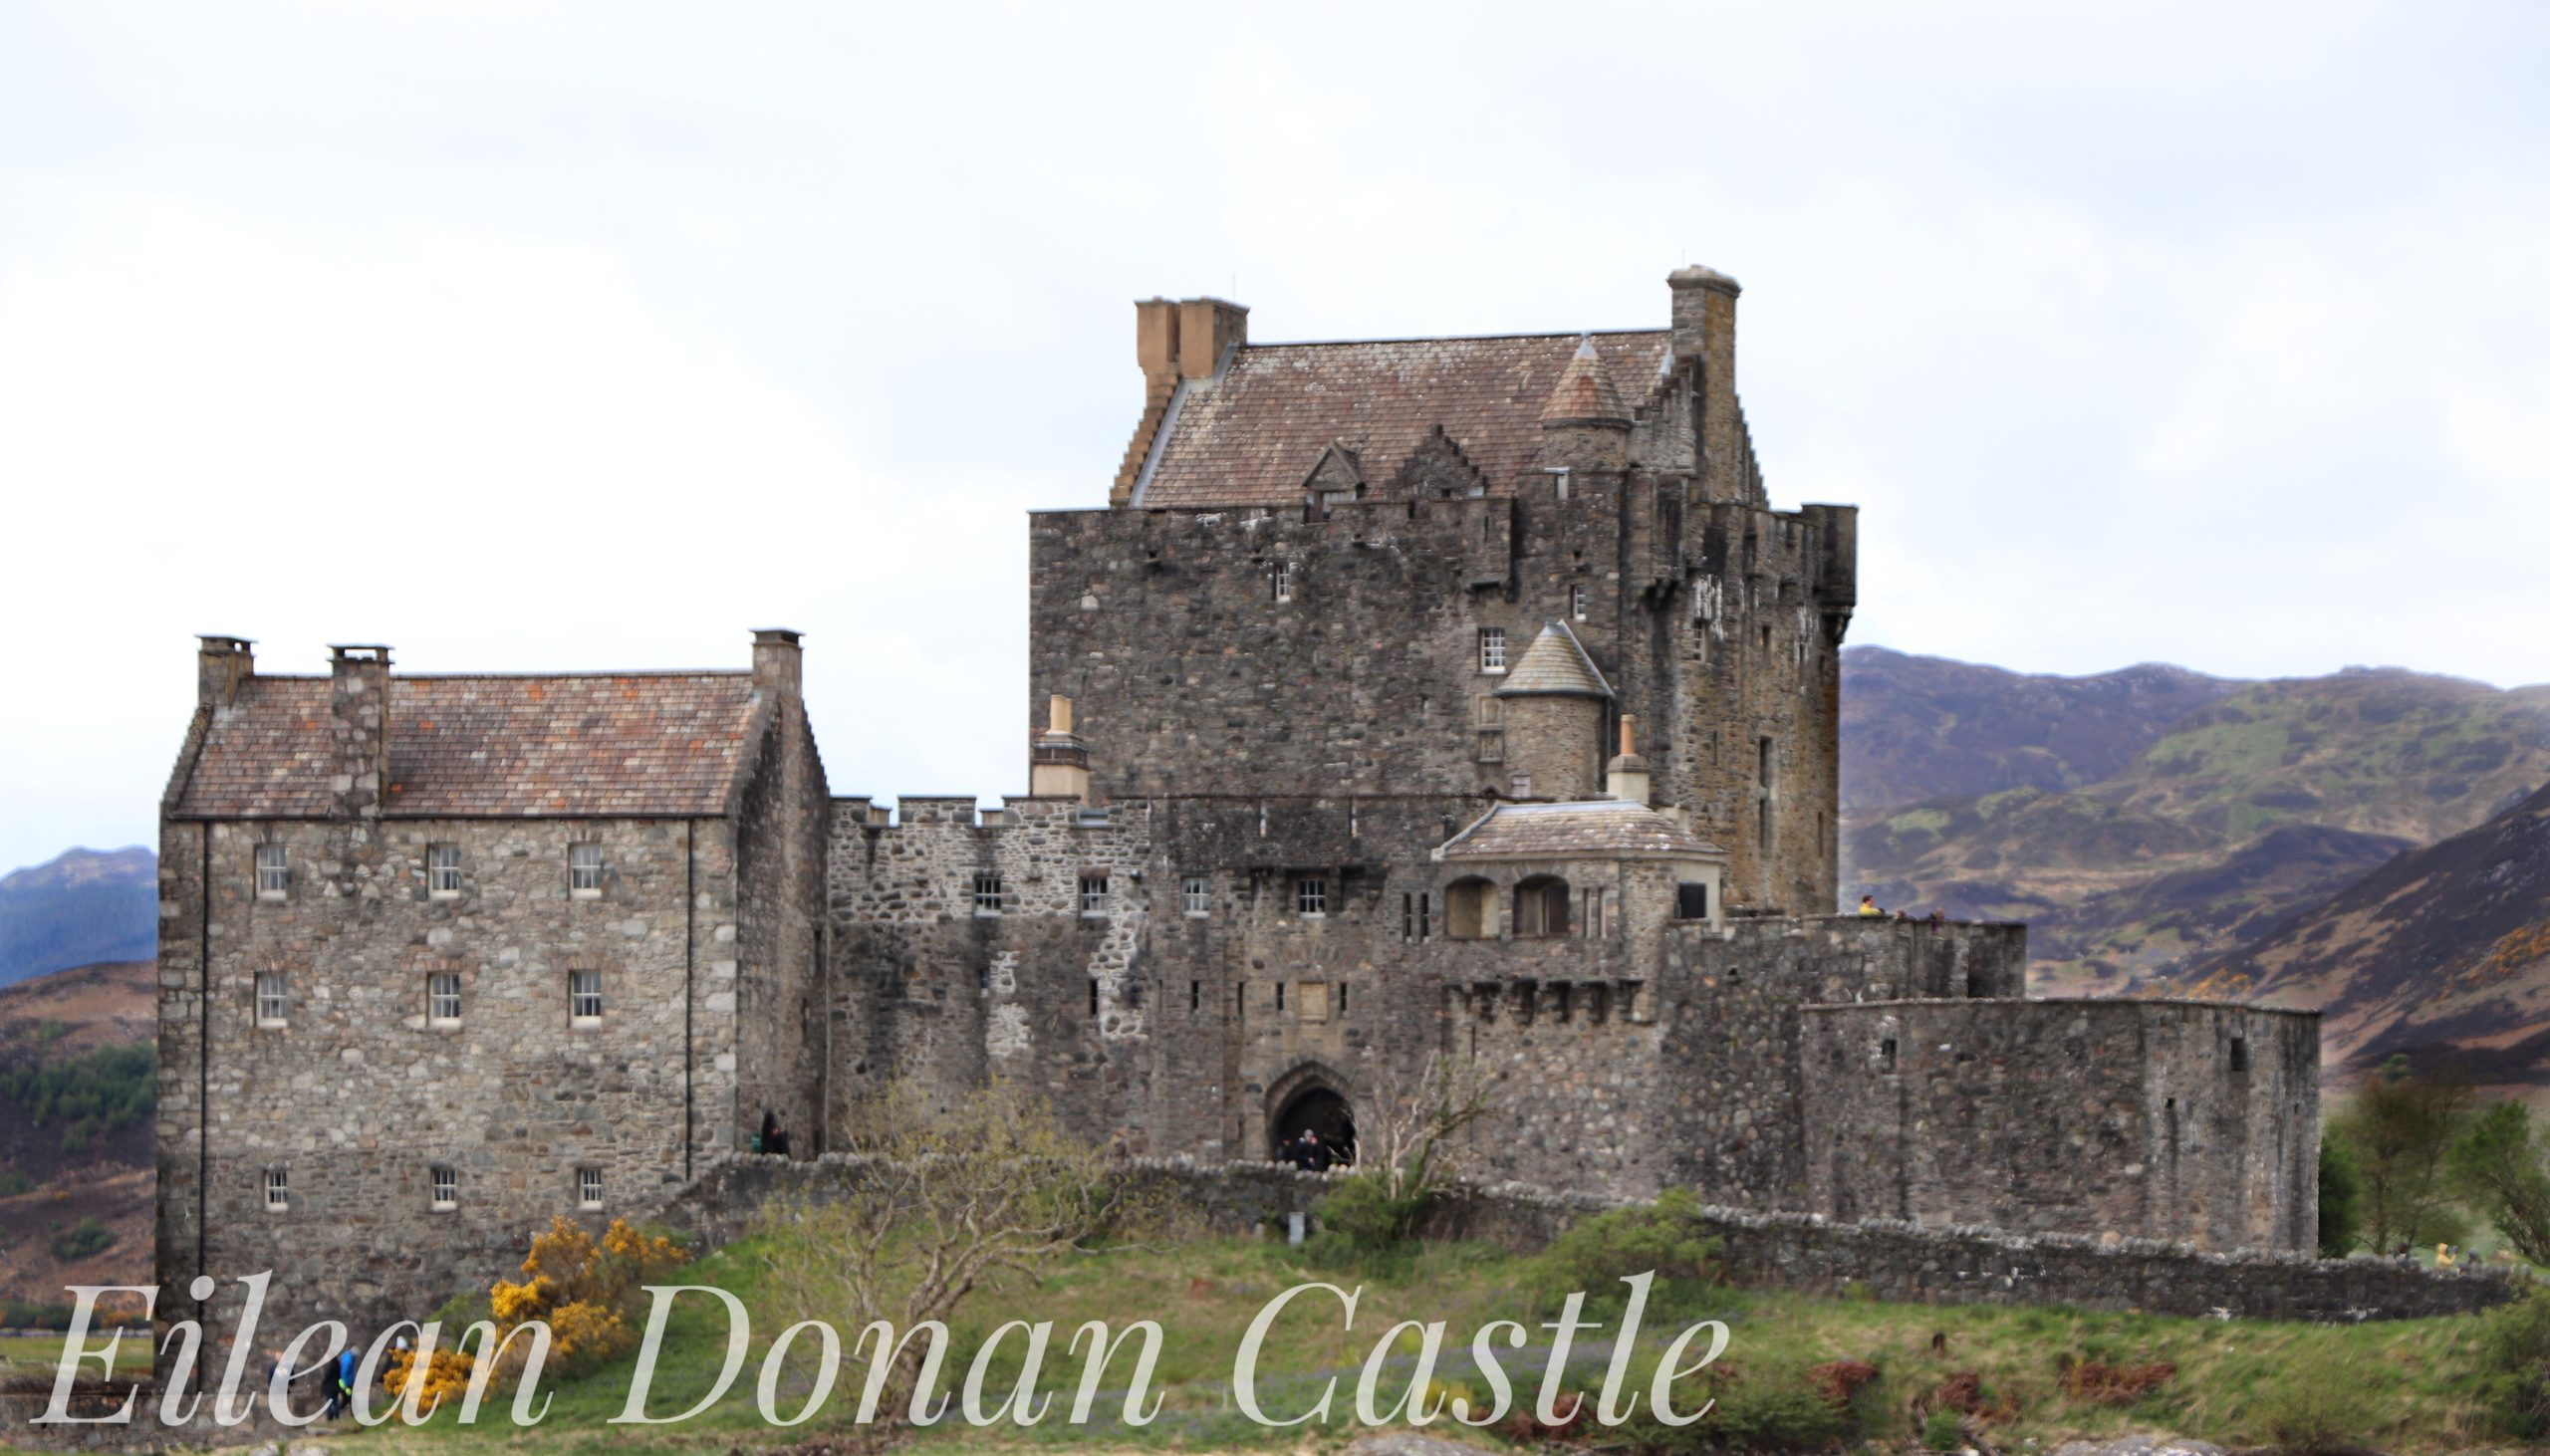 Eilean Donan Castle in the western Highlands of Scotland